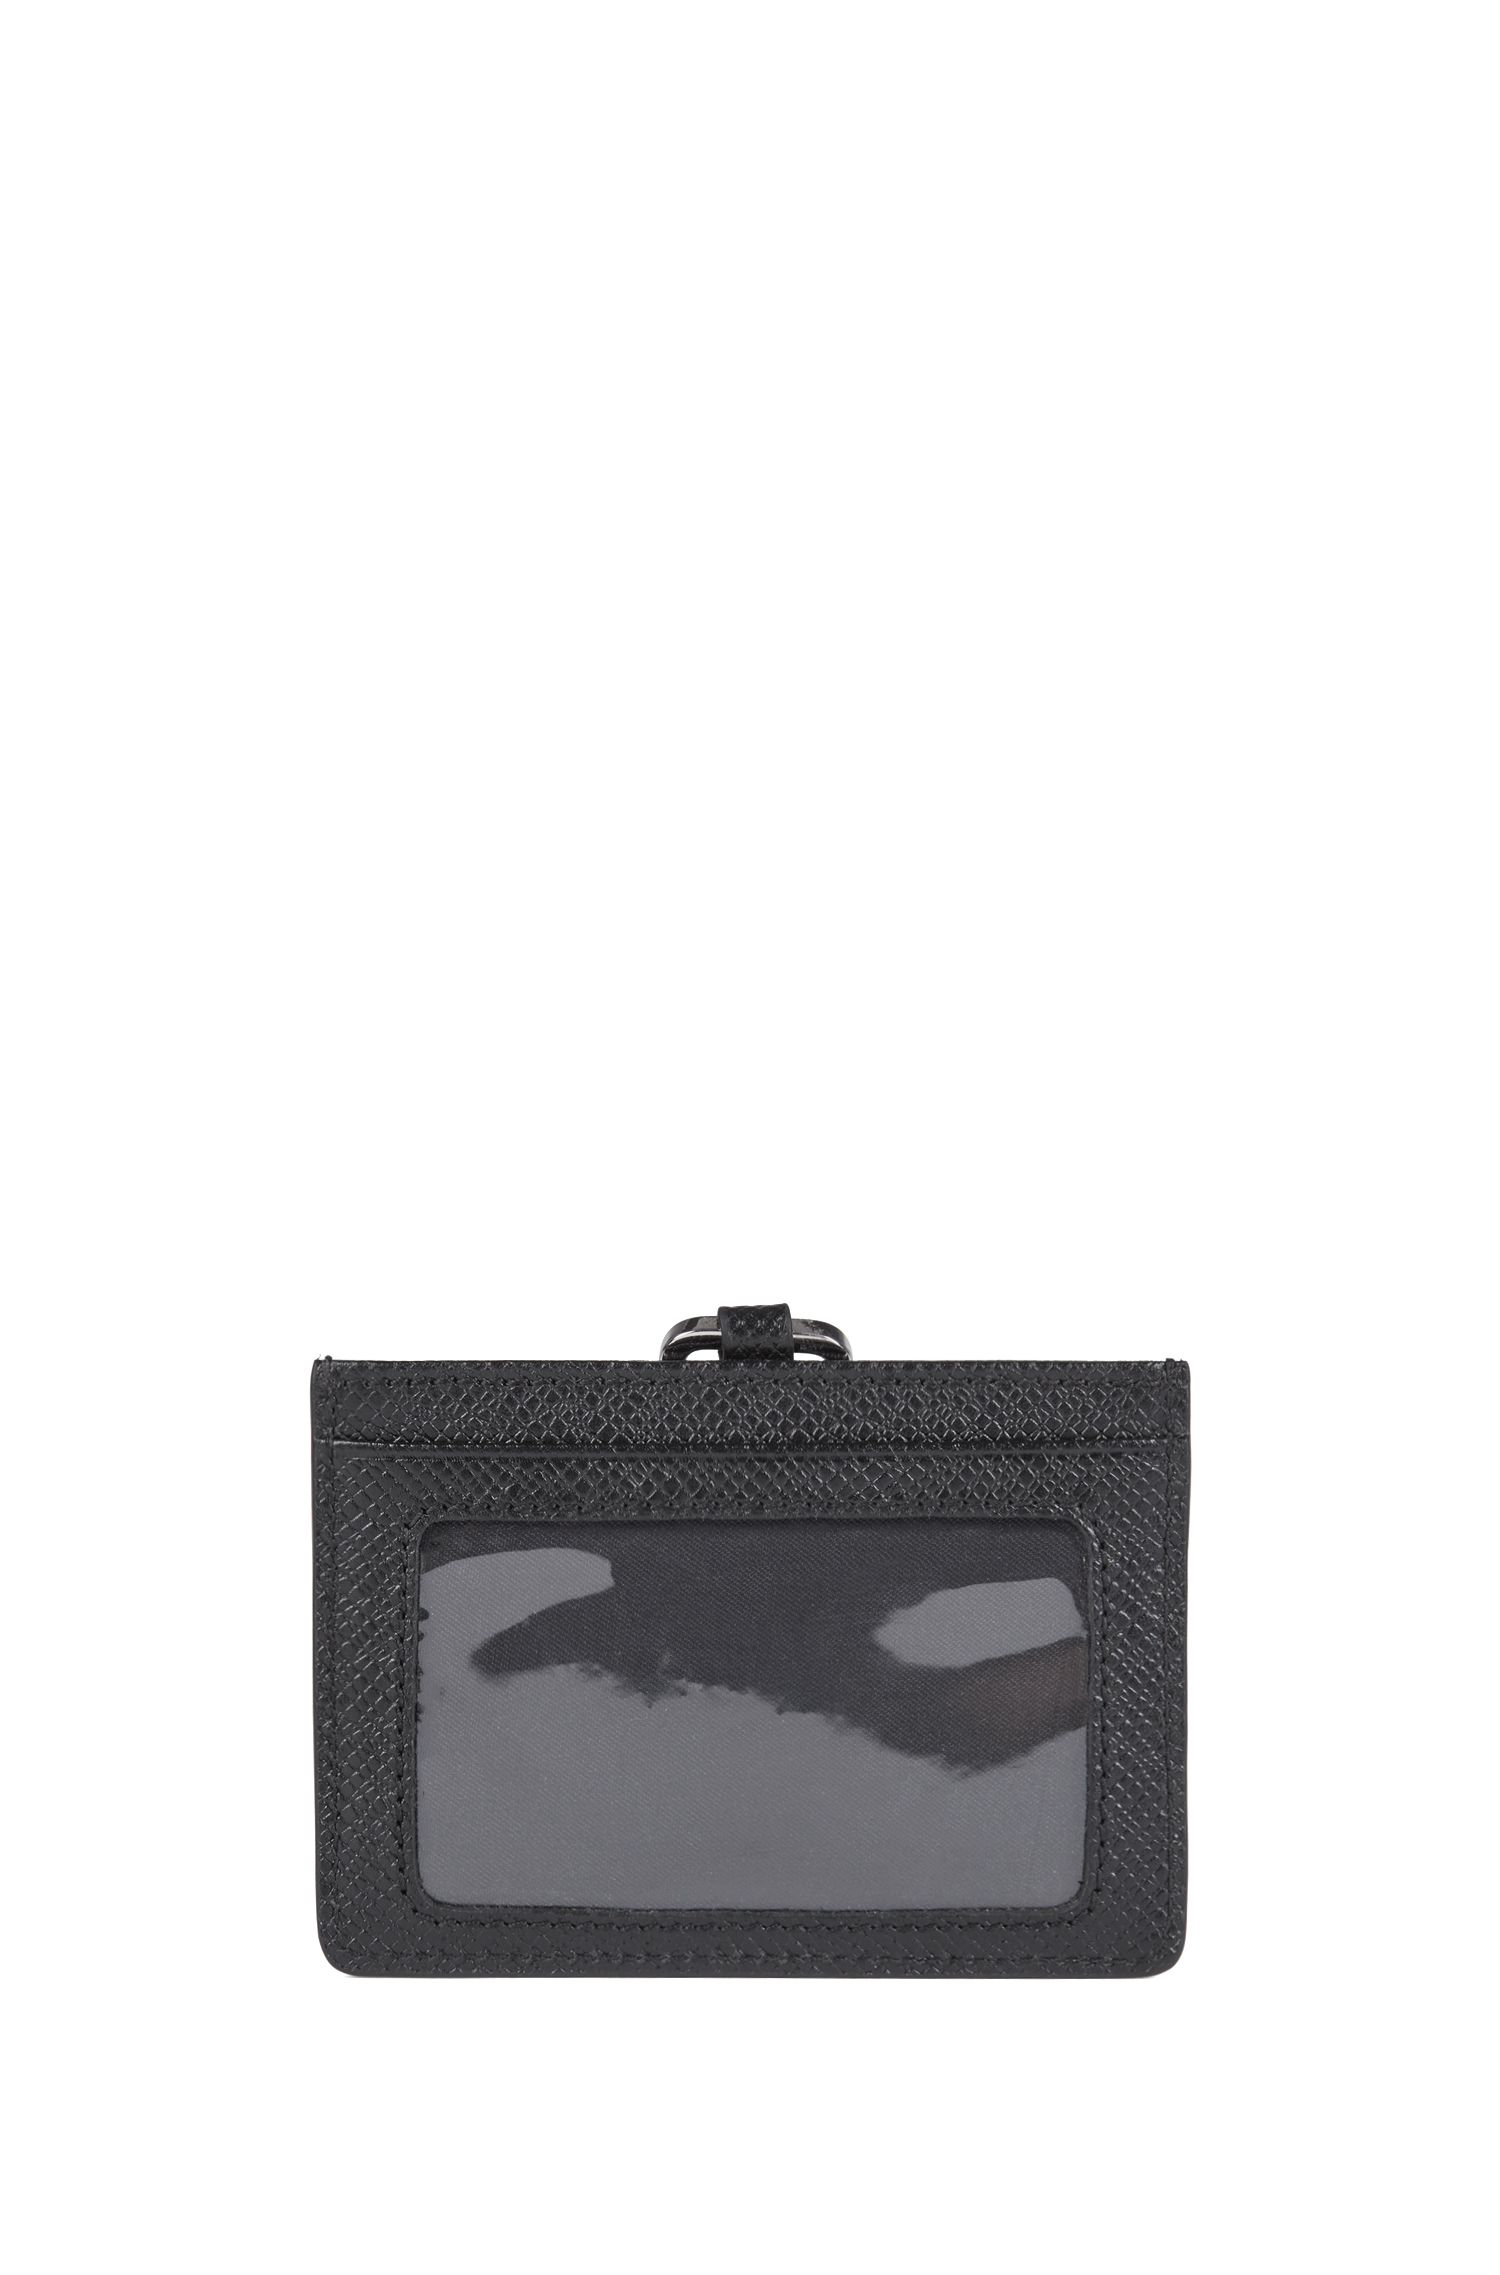 Signature Collection card holder with ID pocket and strap, Black